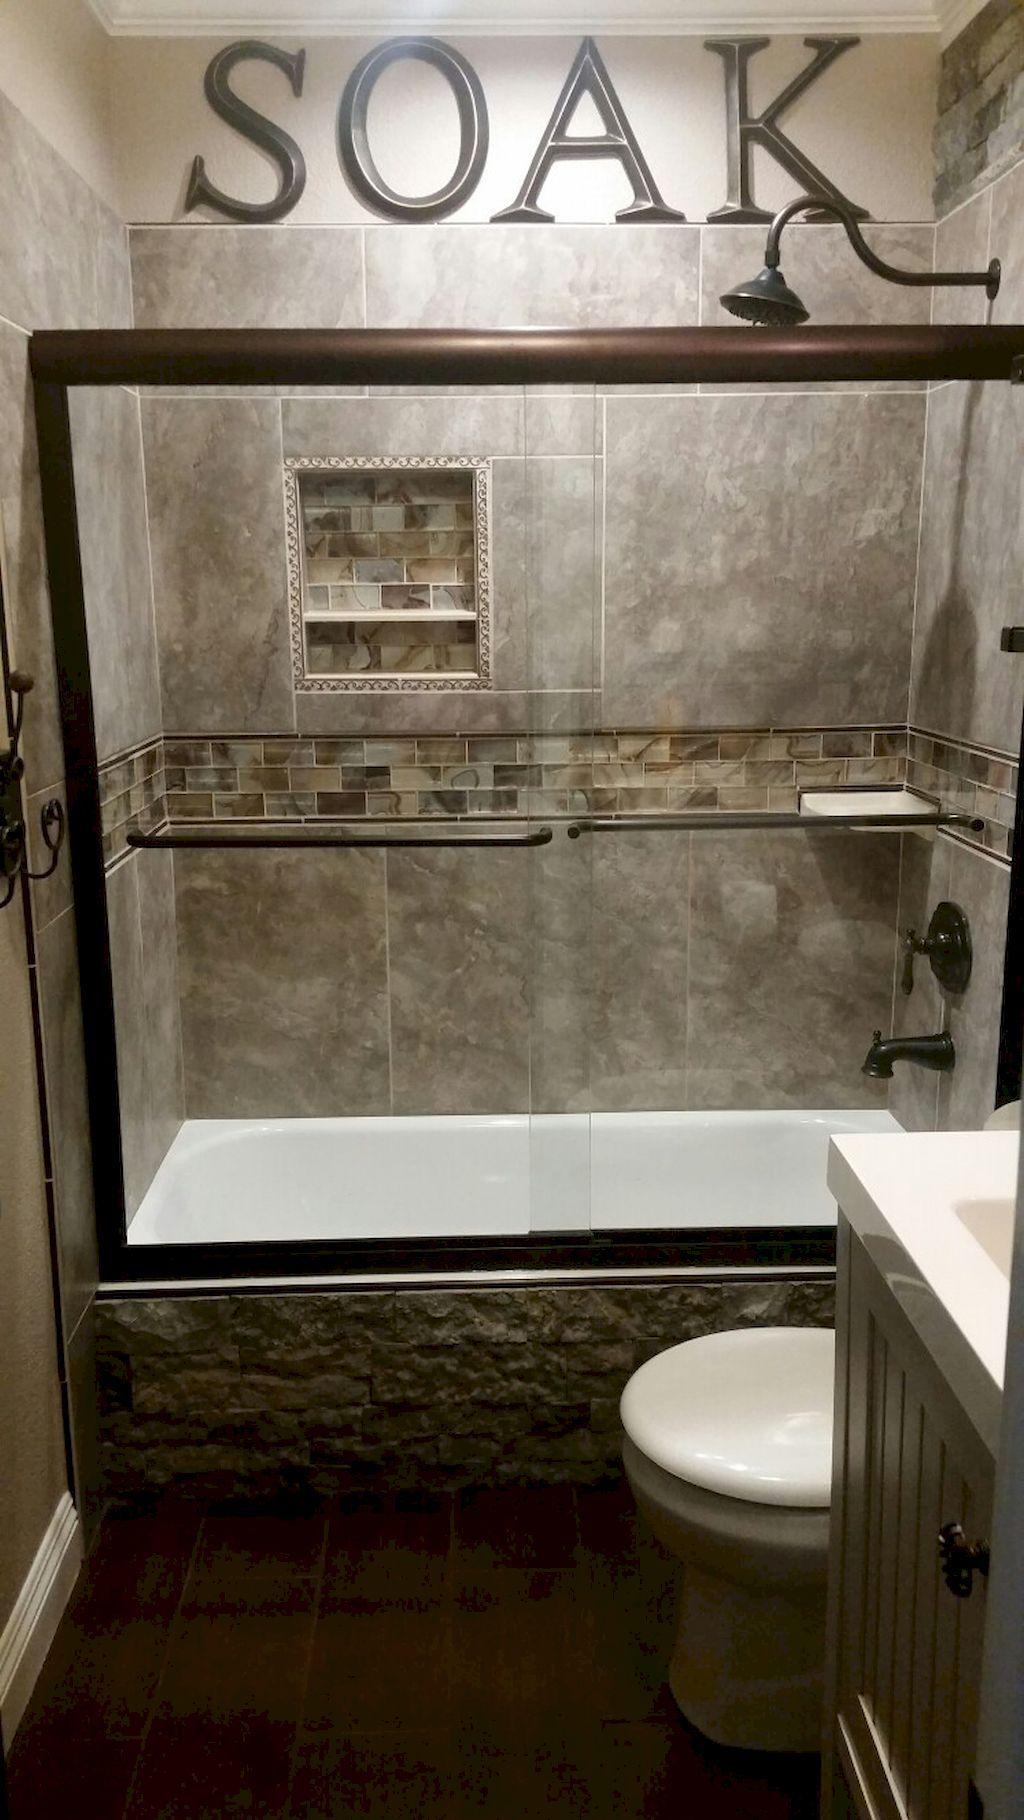 Pin by latiyfa johnson on ideas 4 home basement bathroom - Pictures of remodeled small bathrooms ...